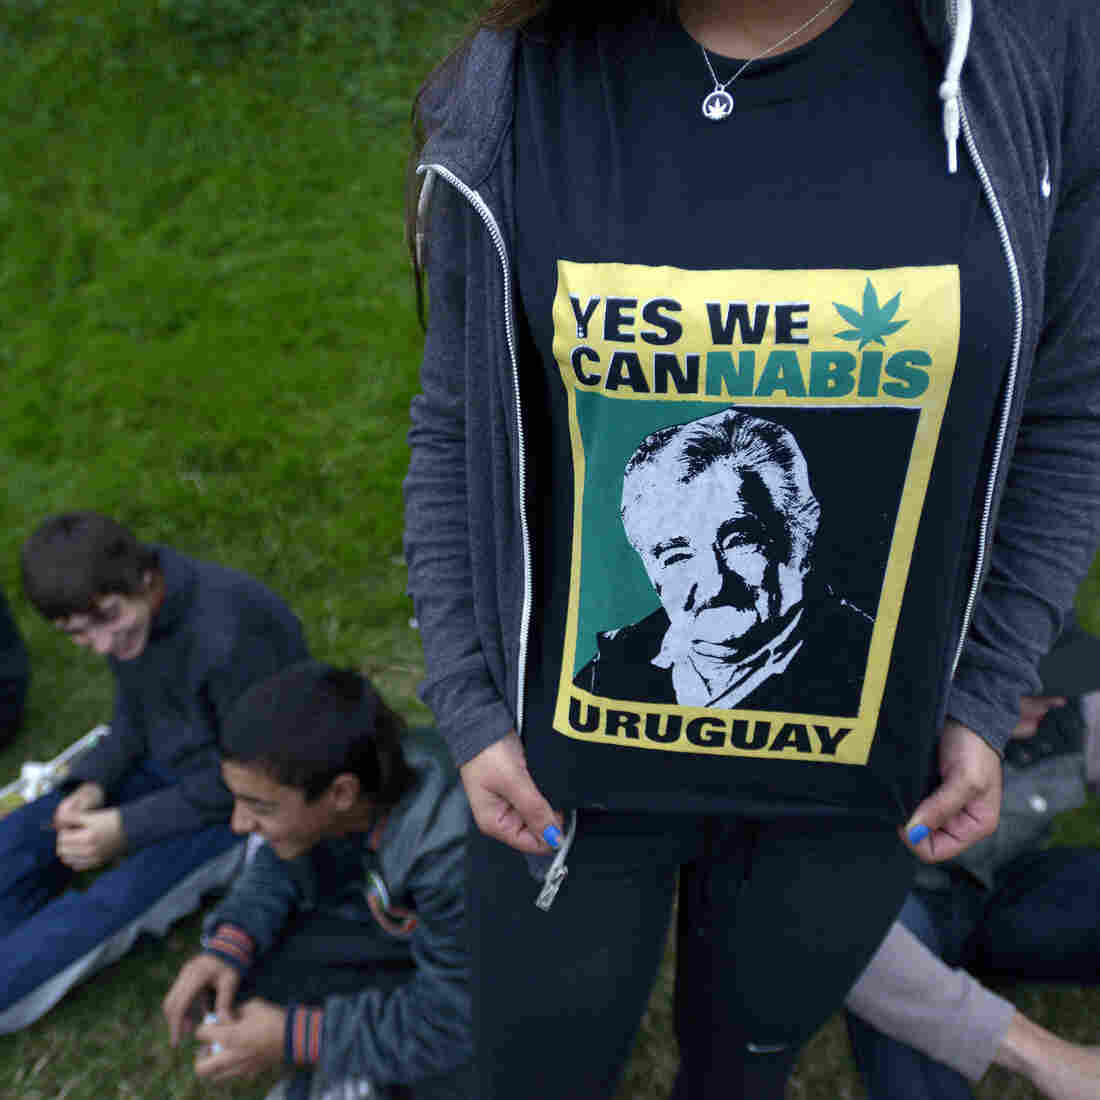 Outgoing Uruguay President Jose Mujica's face illustrates a T-shirt supporting his new law legalizing marijuana. Uruguay's citizens are voting for Mujica's replacement on Sunday, and the expected winner is a candidate from his party.